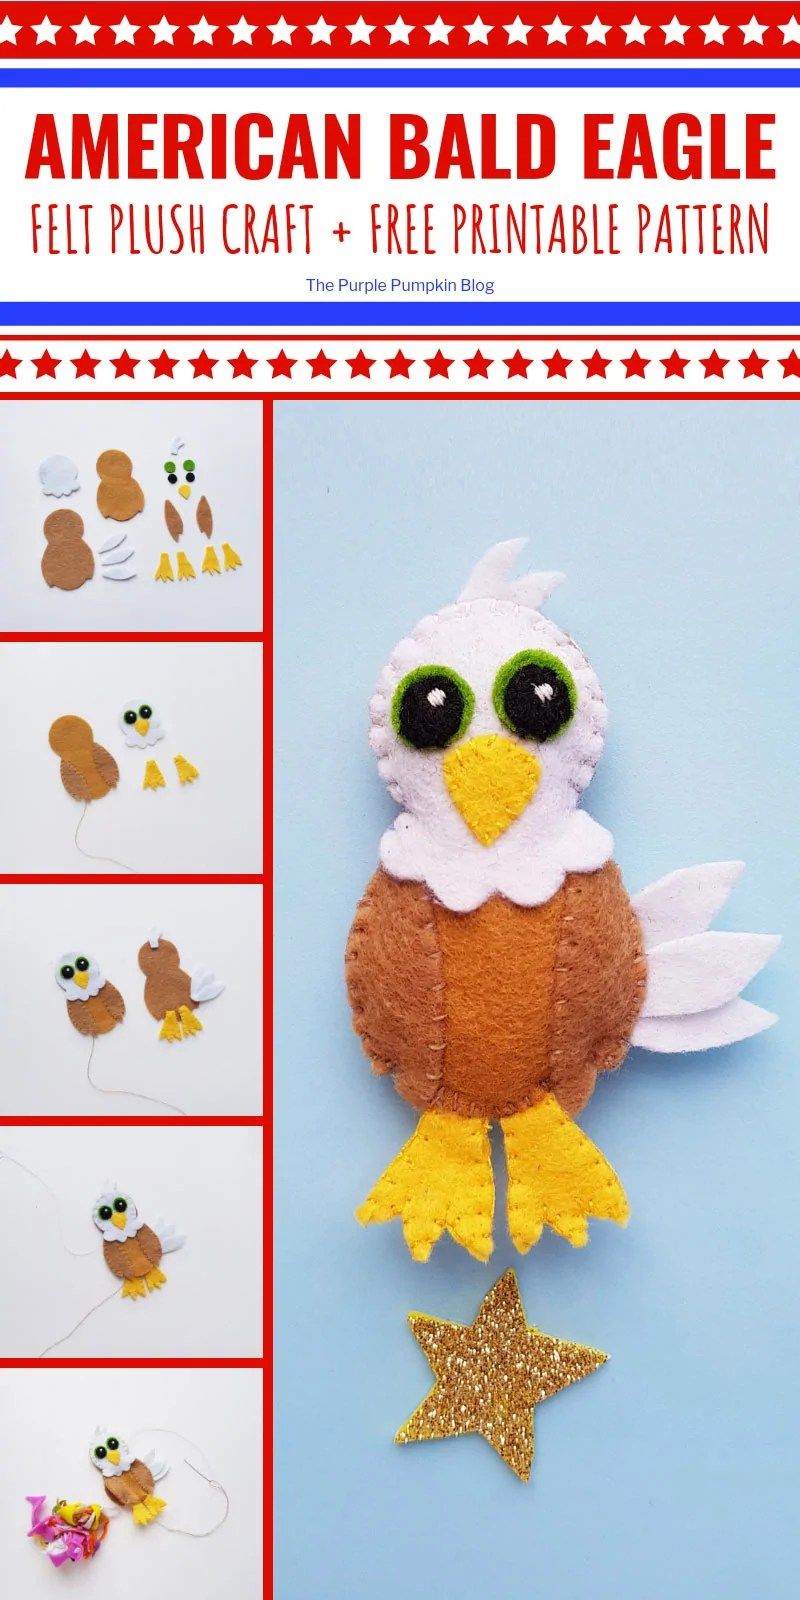 American Bald Eagle Felt Plush Craft with Free Printable Pattern